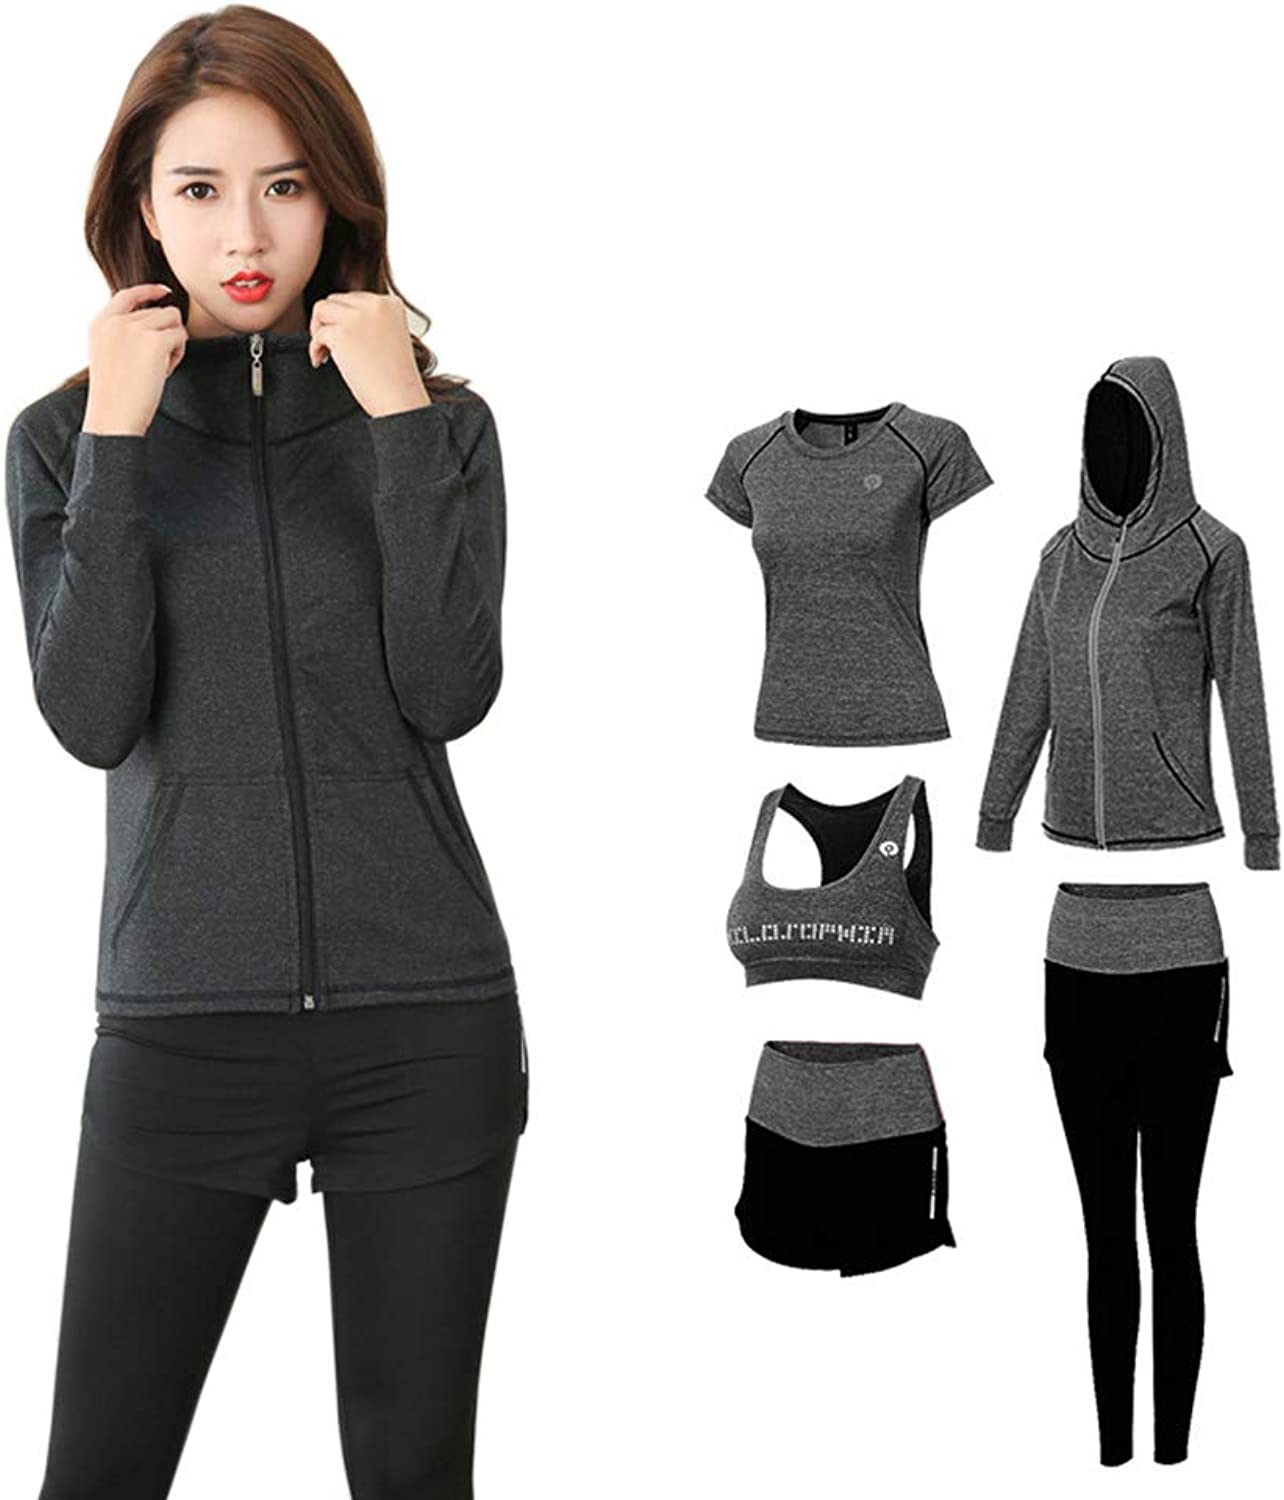 Women's Sports Suit, Yoga Clothes Suit Sports Outdoor Running Slim Jacket Fitness Clothes FivePiece Suit,M